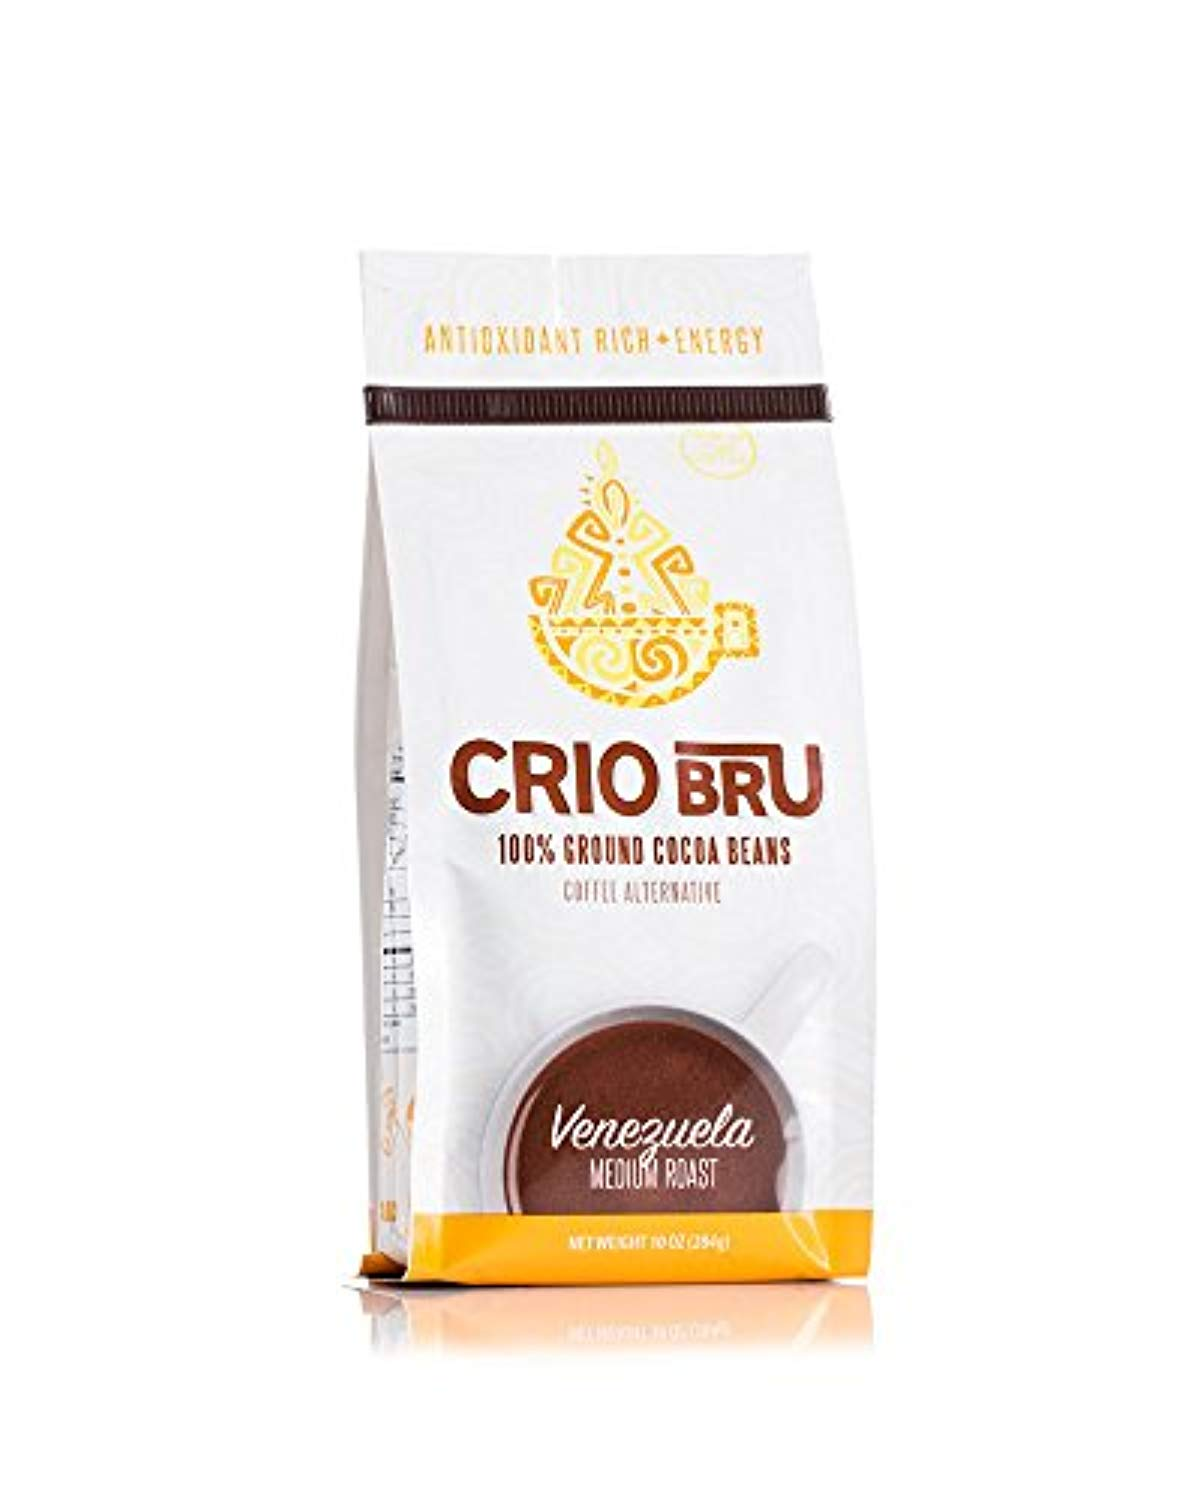 Crio Bru Venezuela Medium Roast Herbal Tea Coffee Alternative Substitute 99% Caffeine Free Whole-30 Gluten Free Honest Low Calorie Energy Boost (10oz) - Ufumbuzi - Home